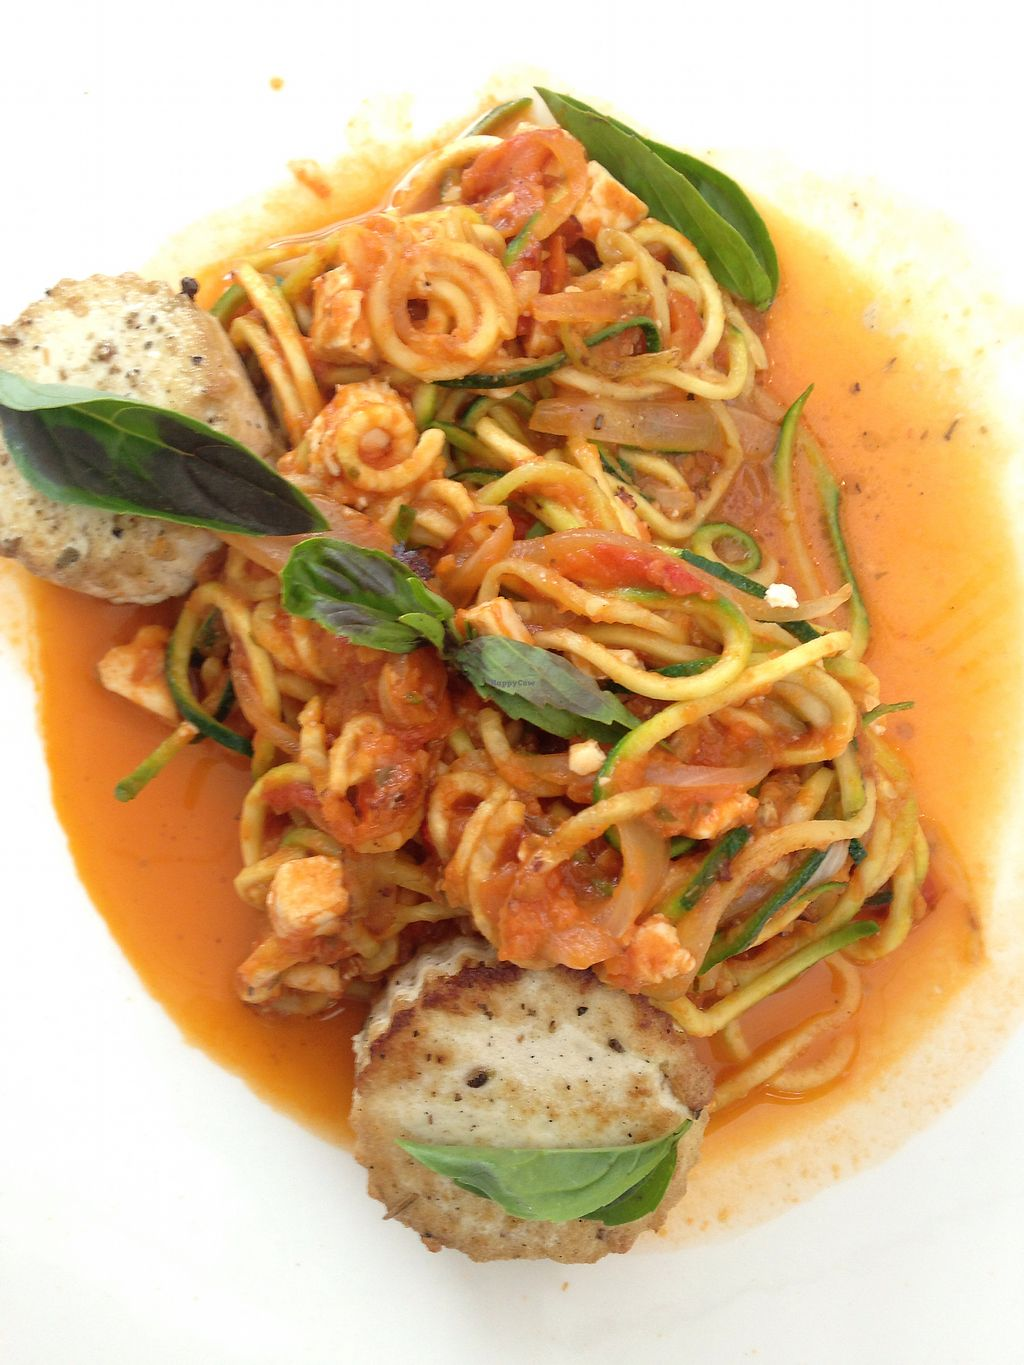 """Photo of The Grove  by <a href=""""/members/profile/asherduncan"""">asherduncan</a> <br/>Zoodles and tofu scallops  <br/> July 7, 2017  - <a href='/contact/abuse/image/95643/277590'>Report</a>"""